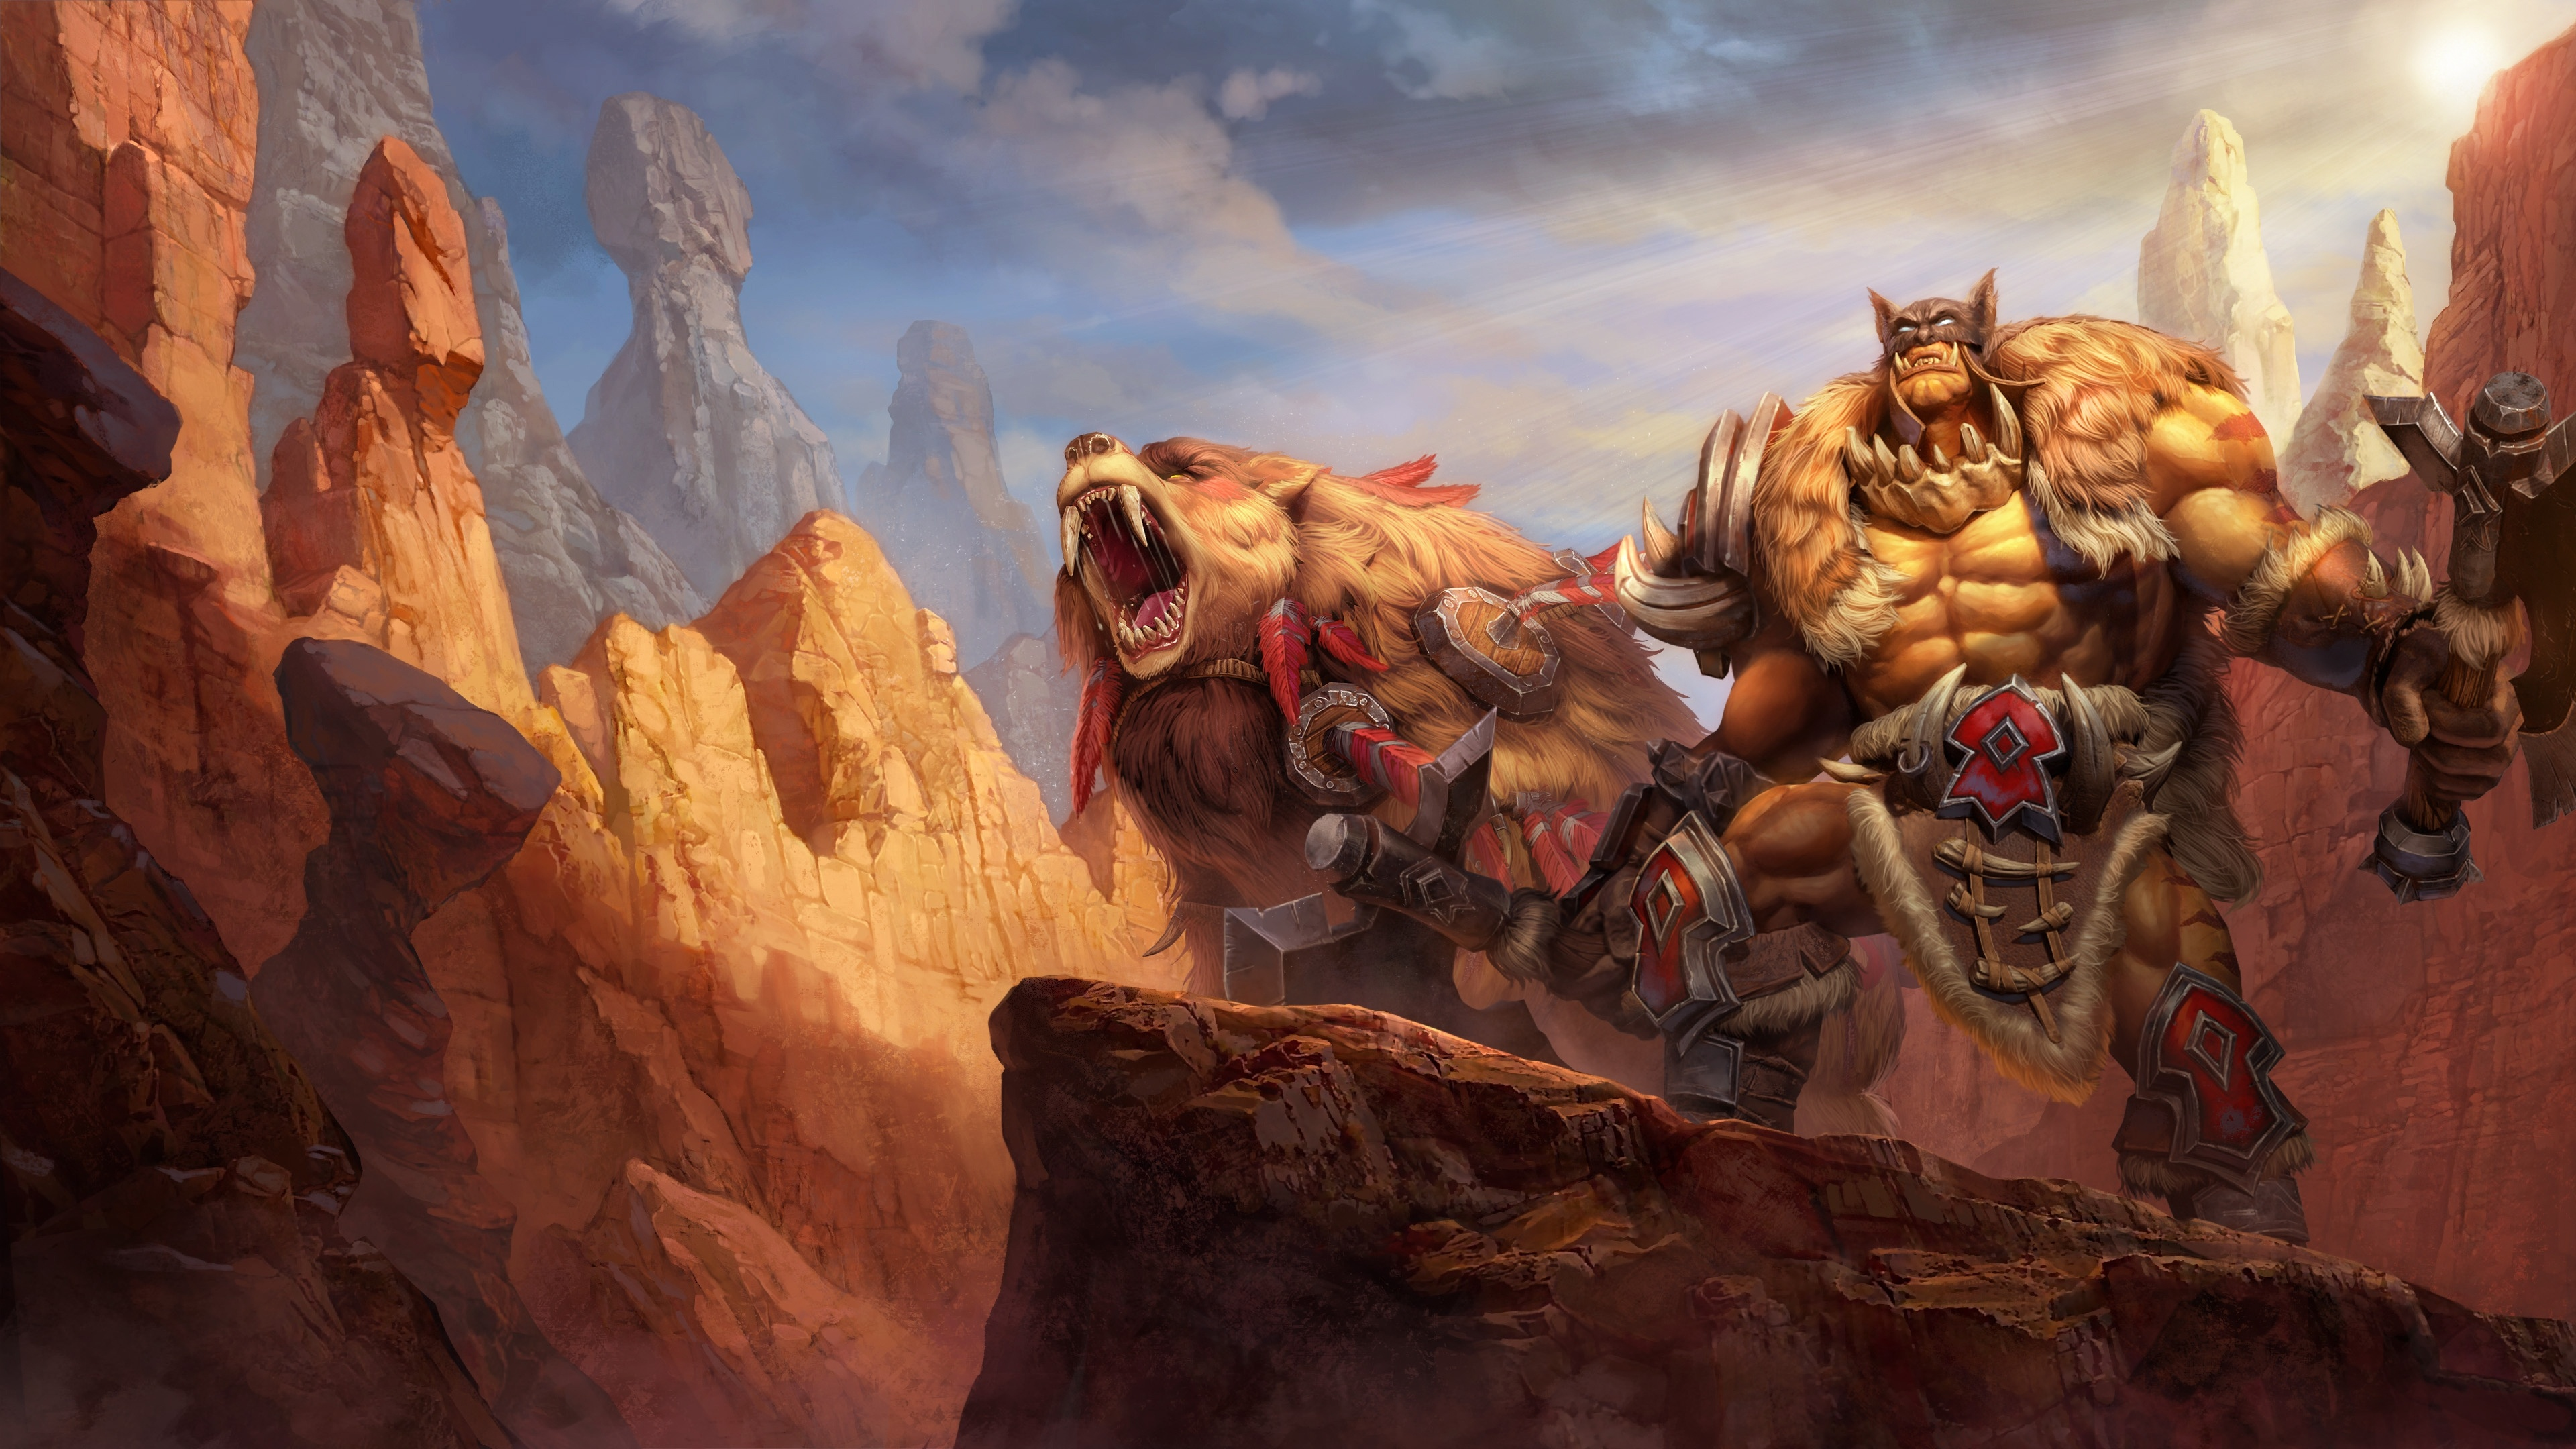 Warcraft Iii Reforged Story Campaign Backgrounds Part 2